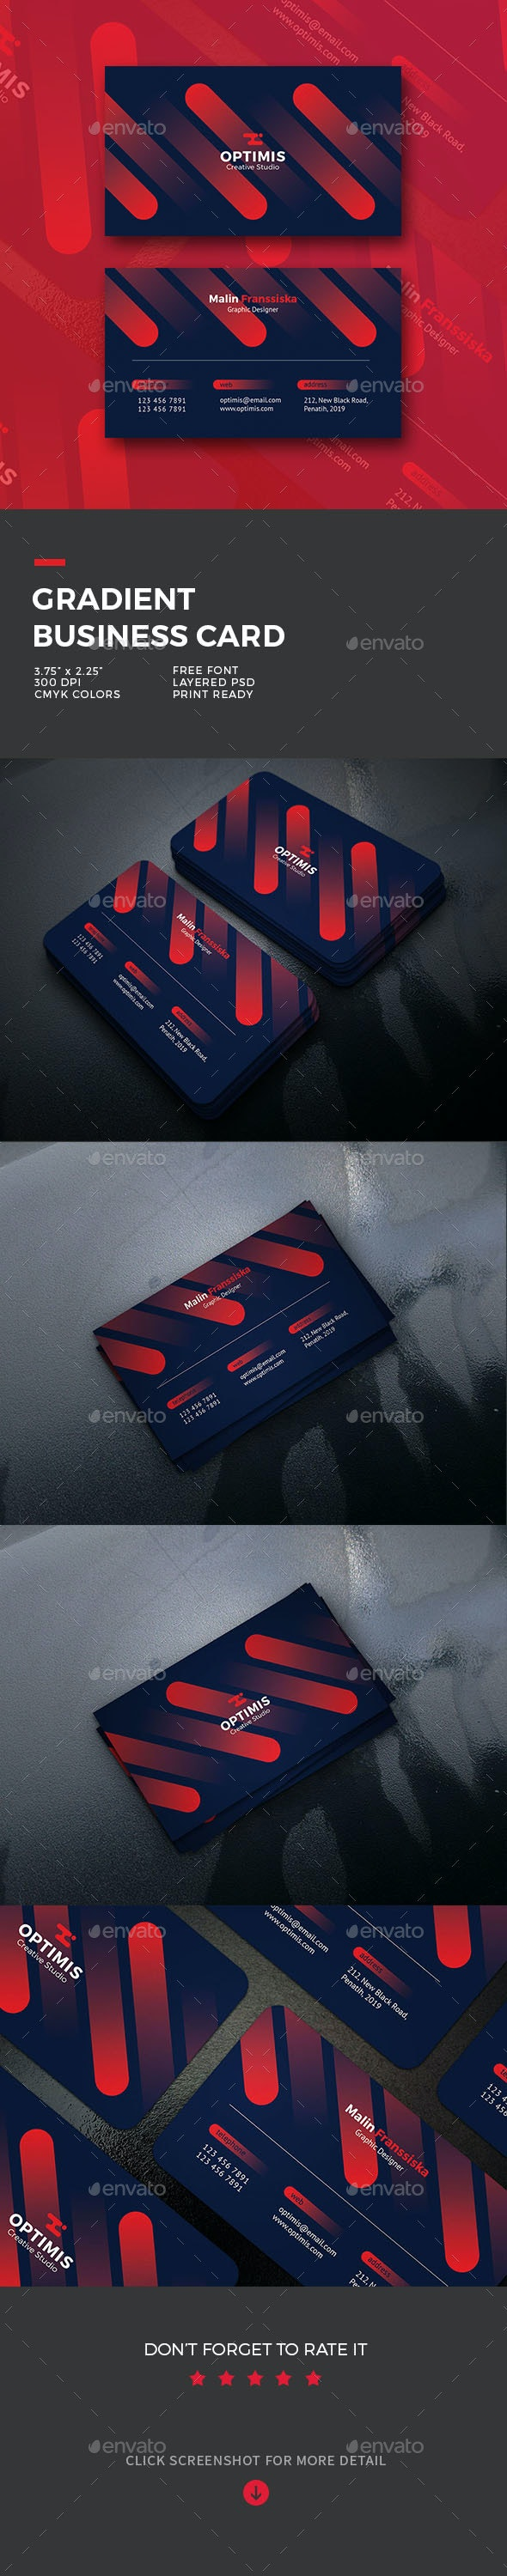 Gradient Business Card - Business Cards Print Templates